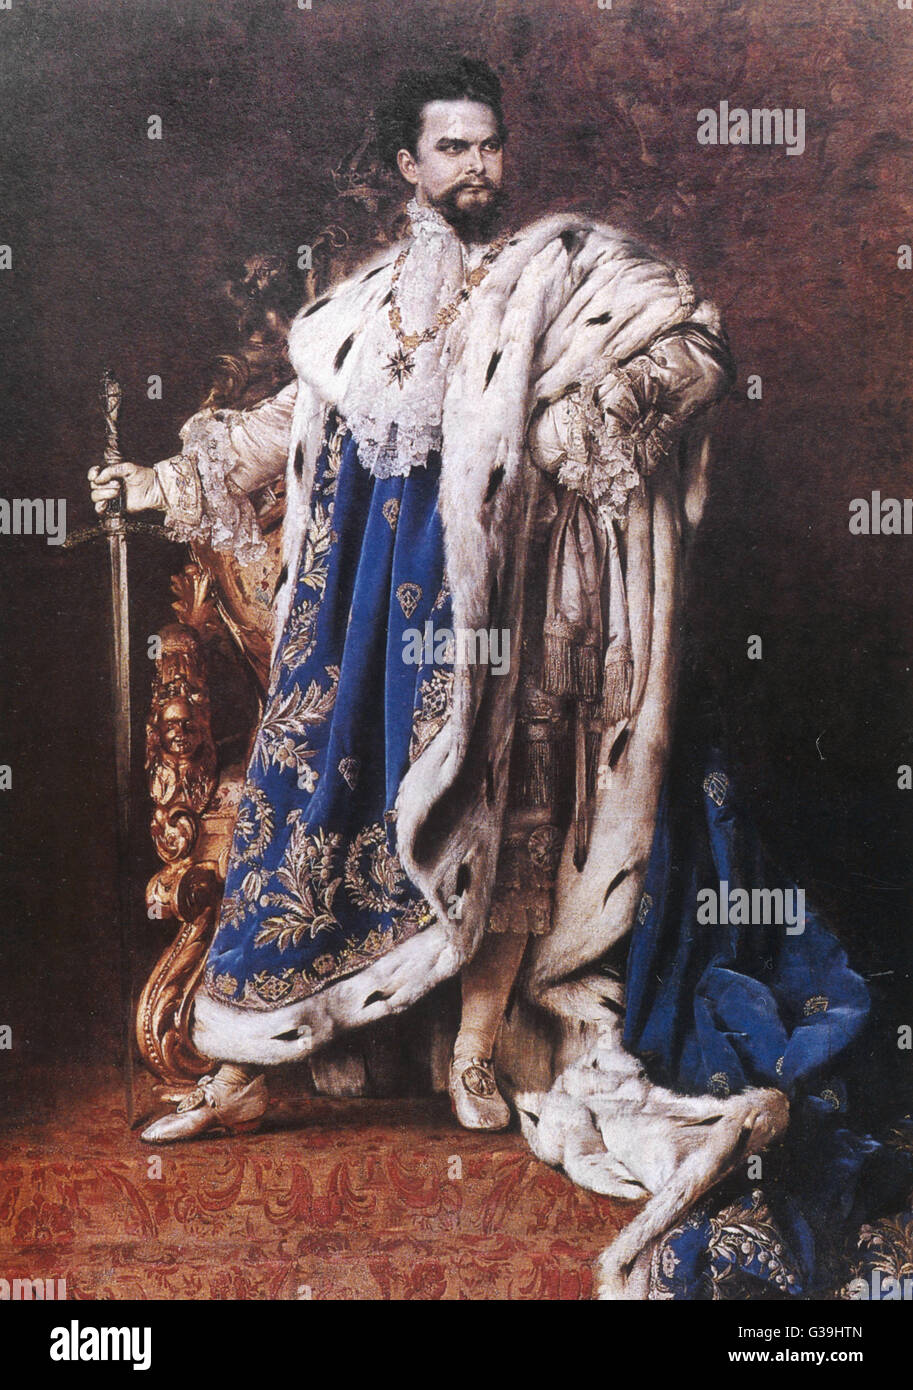 KING LUDWIG II OF BAVARIA  Reigned from March 1864 until June 1886       Date: 1845 - 1886 - Stock Image